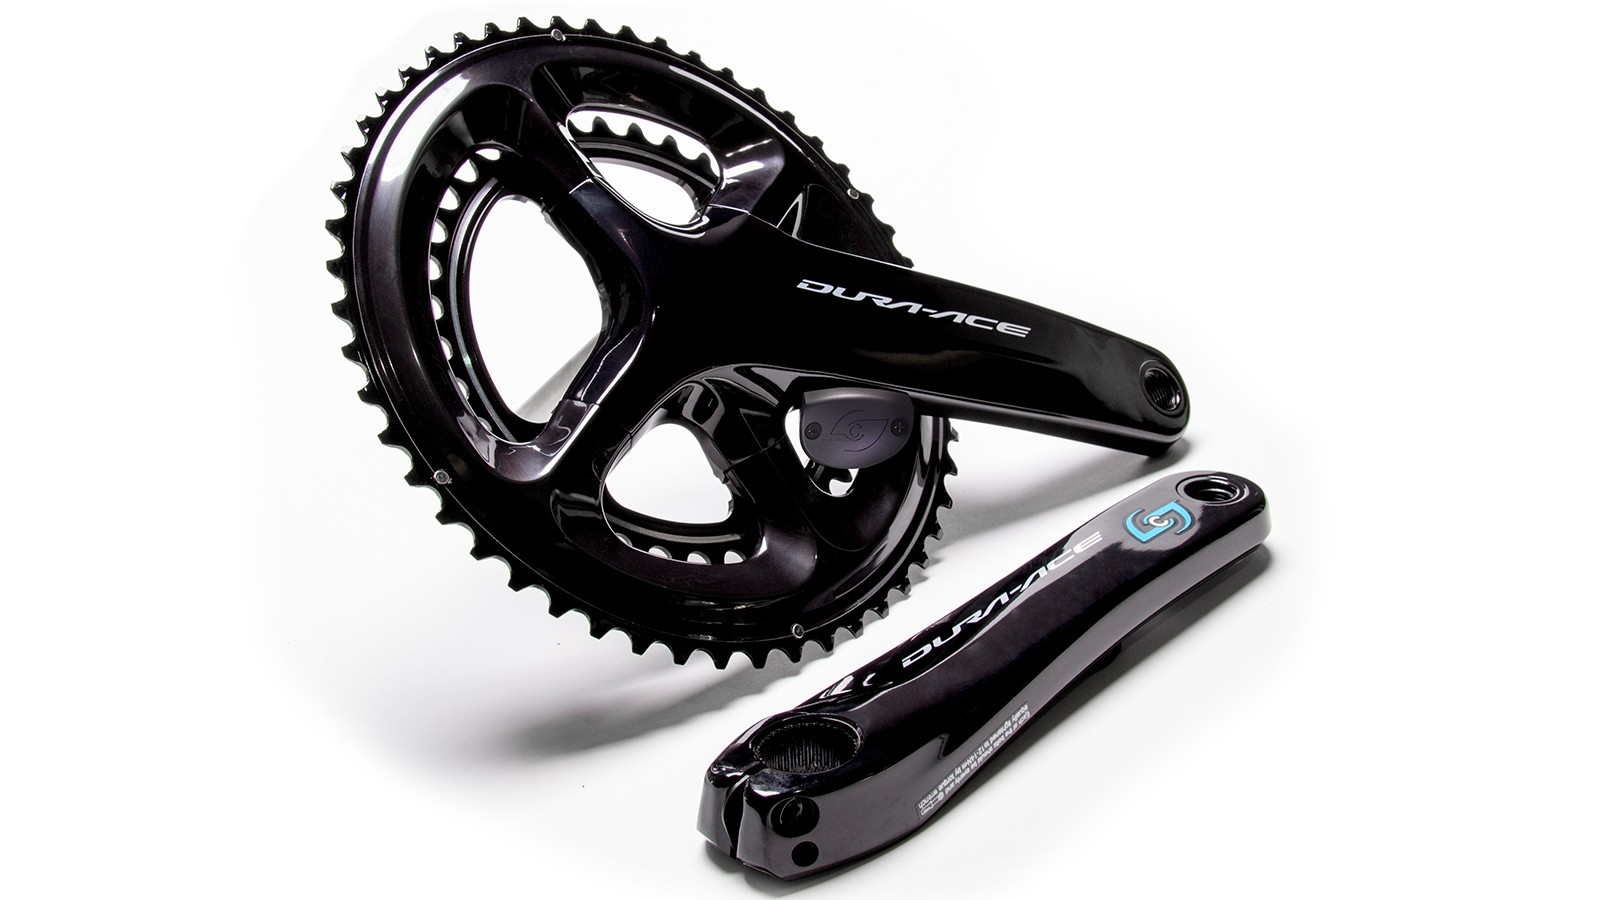 Stages Cycling now has a left/right power meter for Shimano cranks